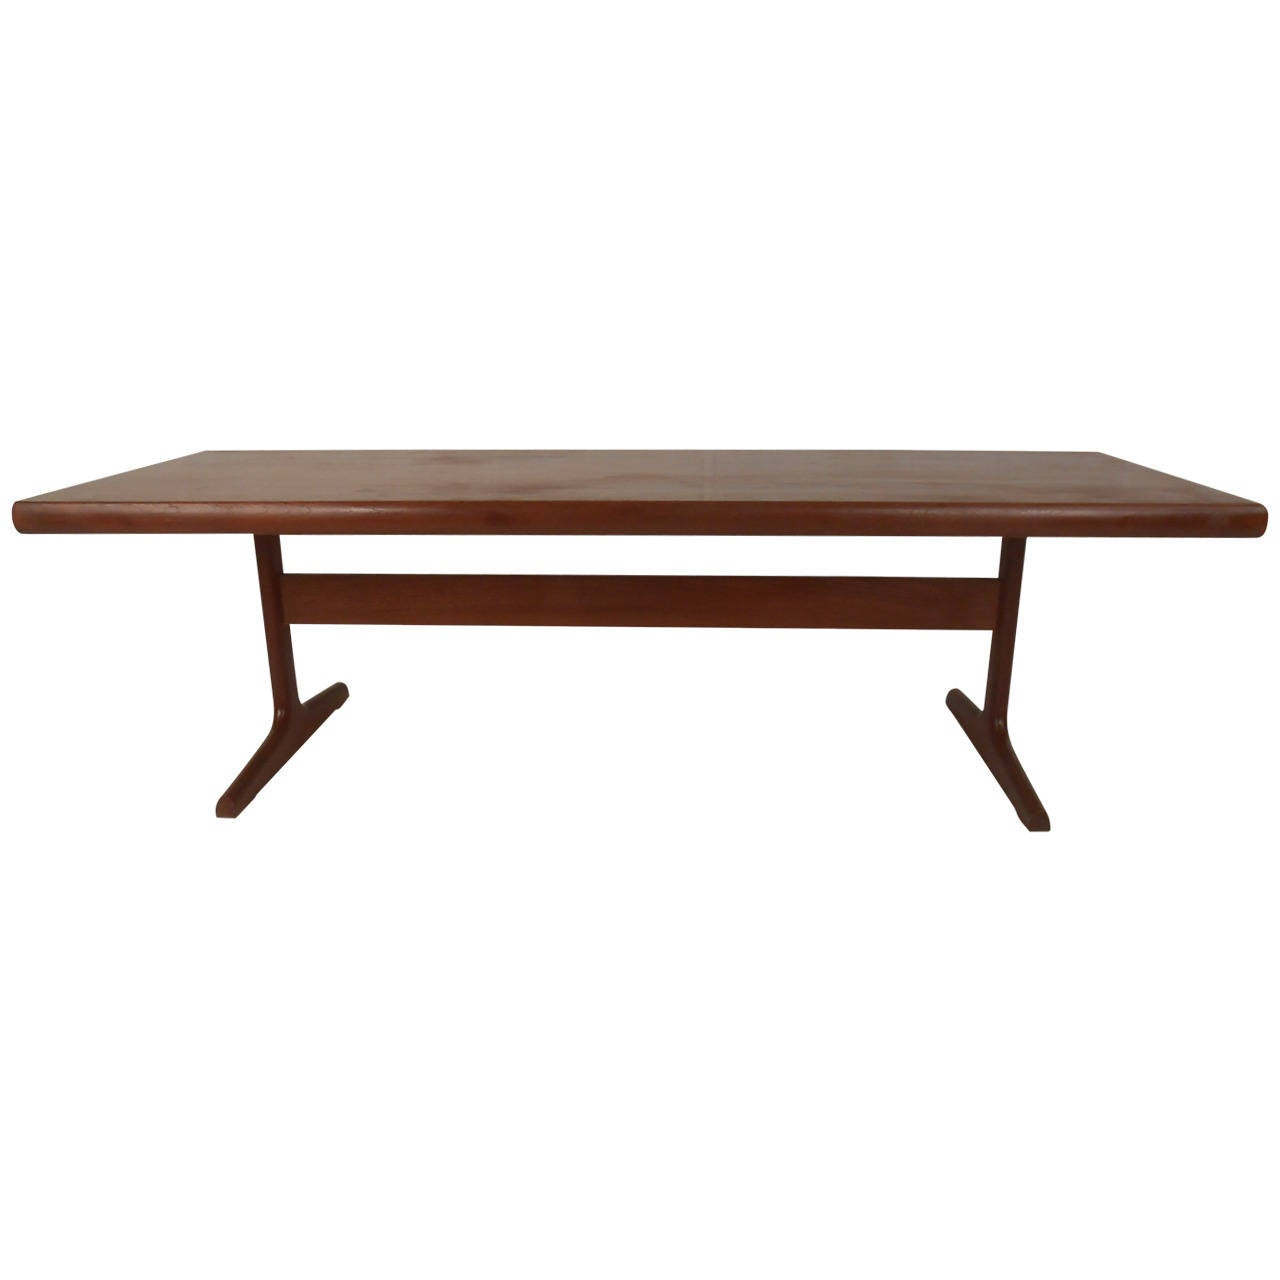 Teak Trestle Base Coffee Table For Sale At 1stdibs